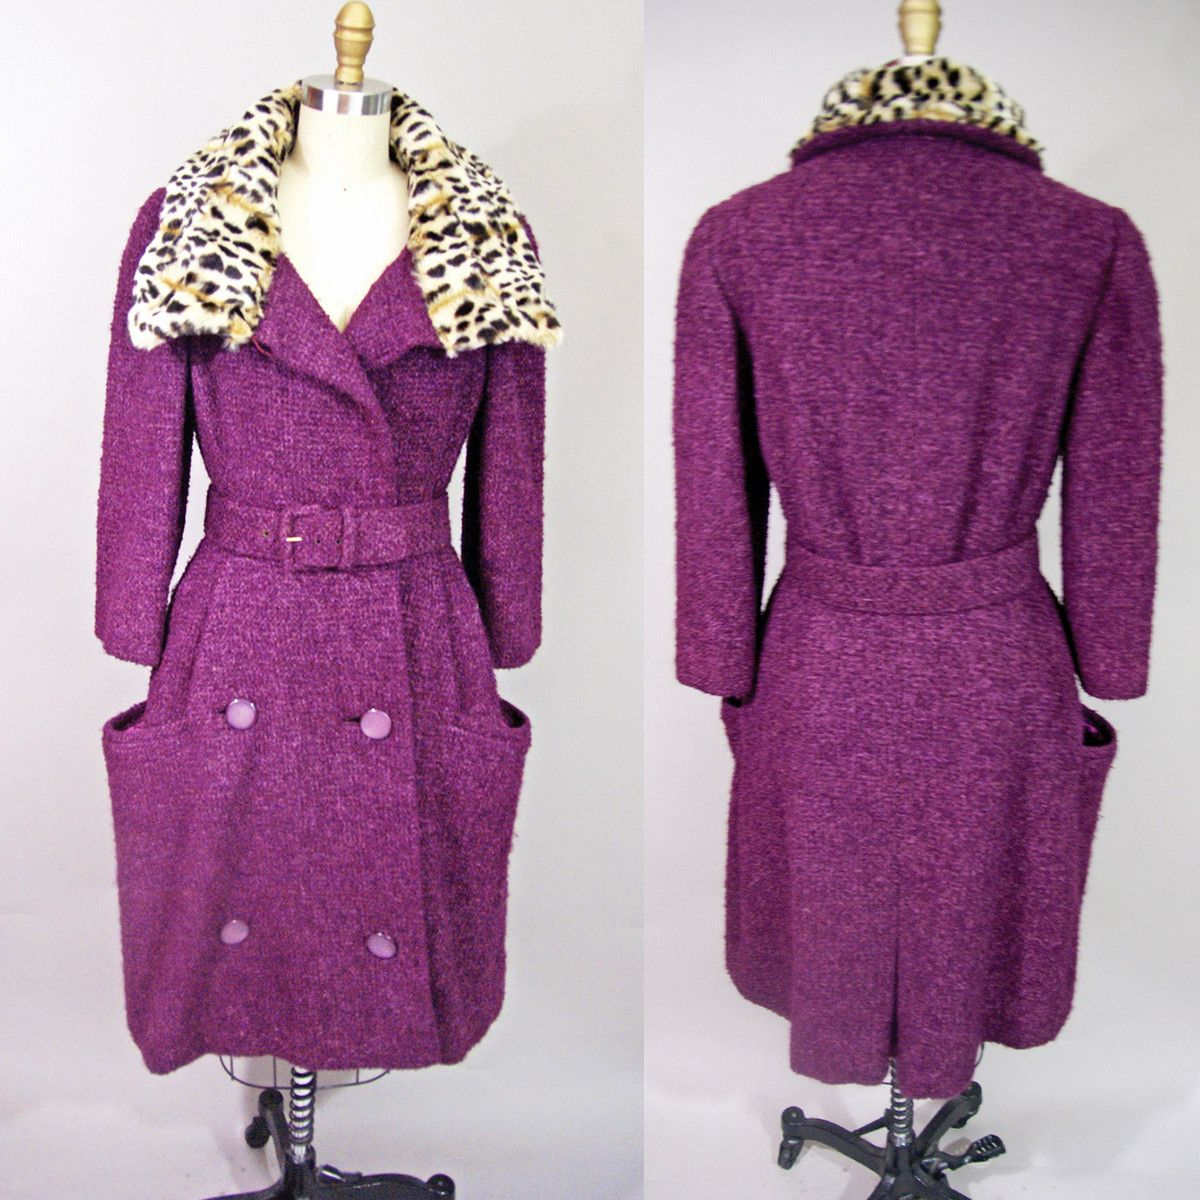 Fab 60s Artwork: '60s Blums Vogue Boucle Coat - Blums Vogue Of